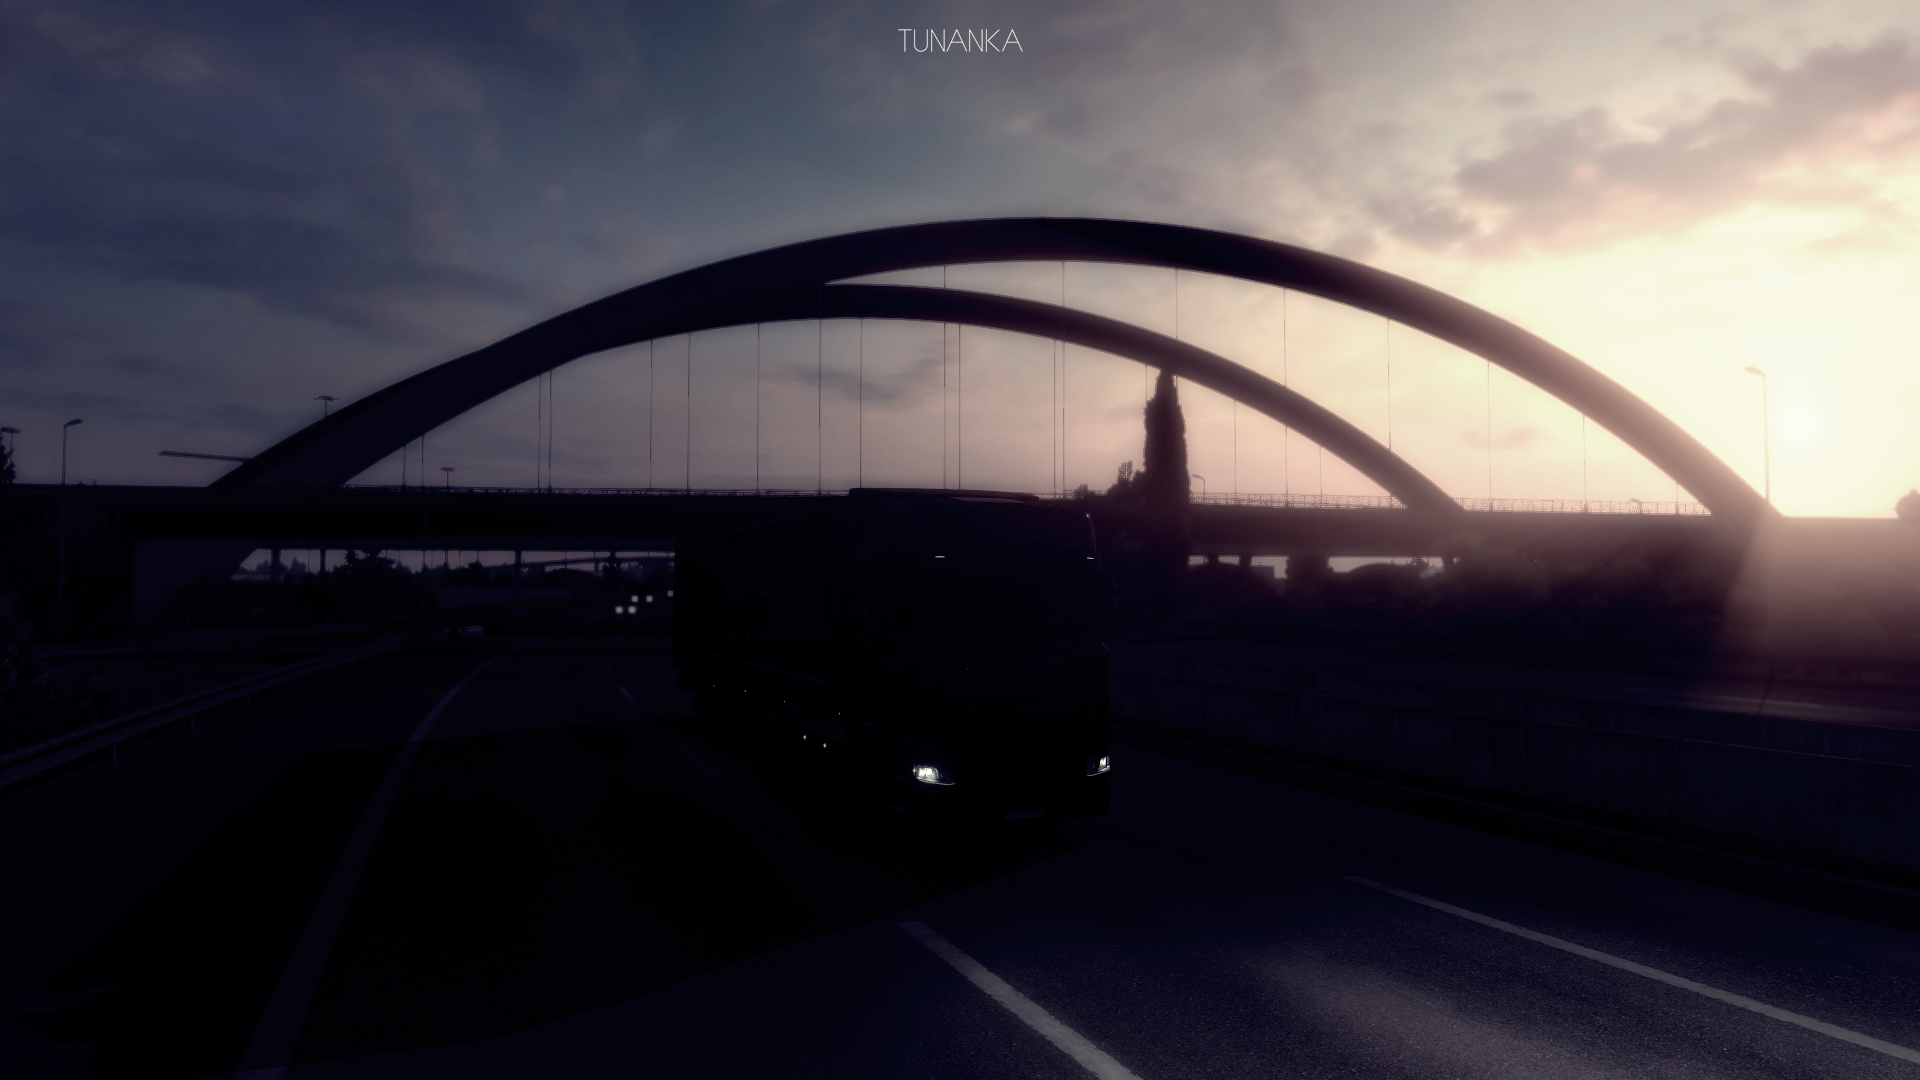 ets2-20190317-191136-00.png